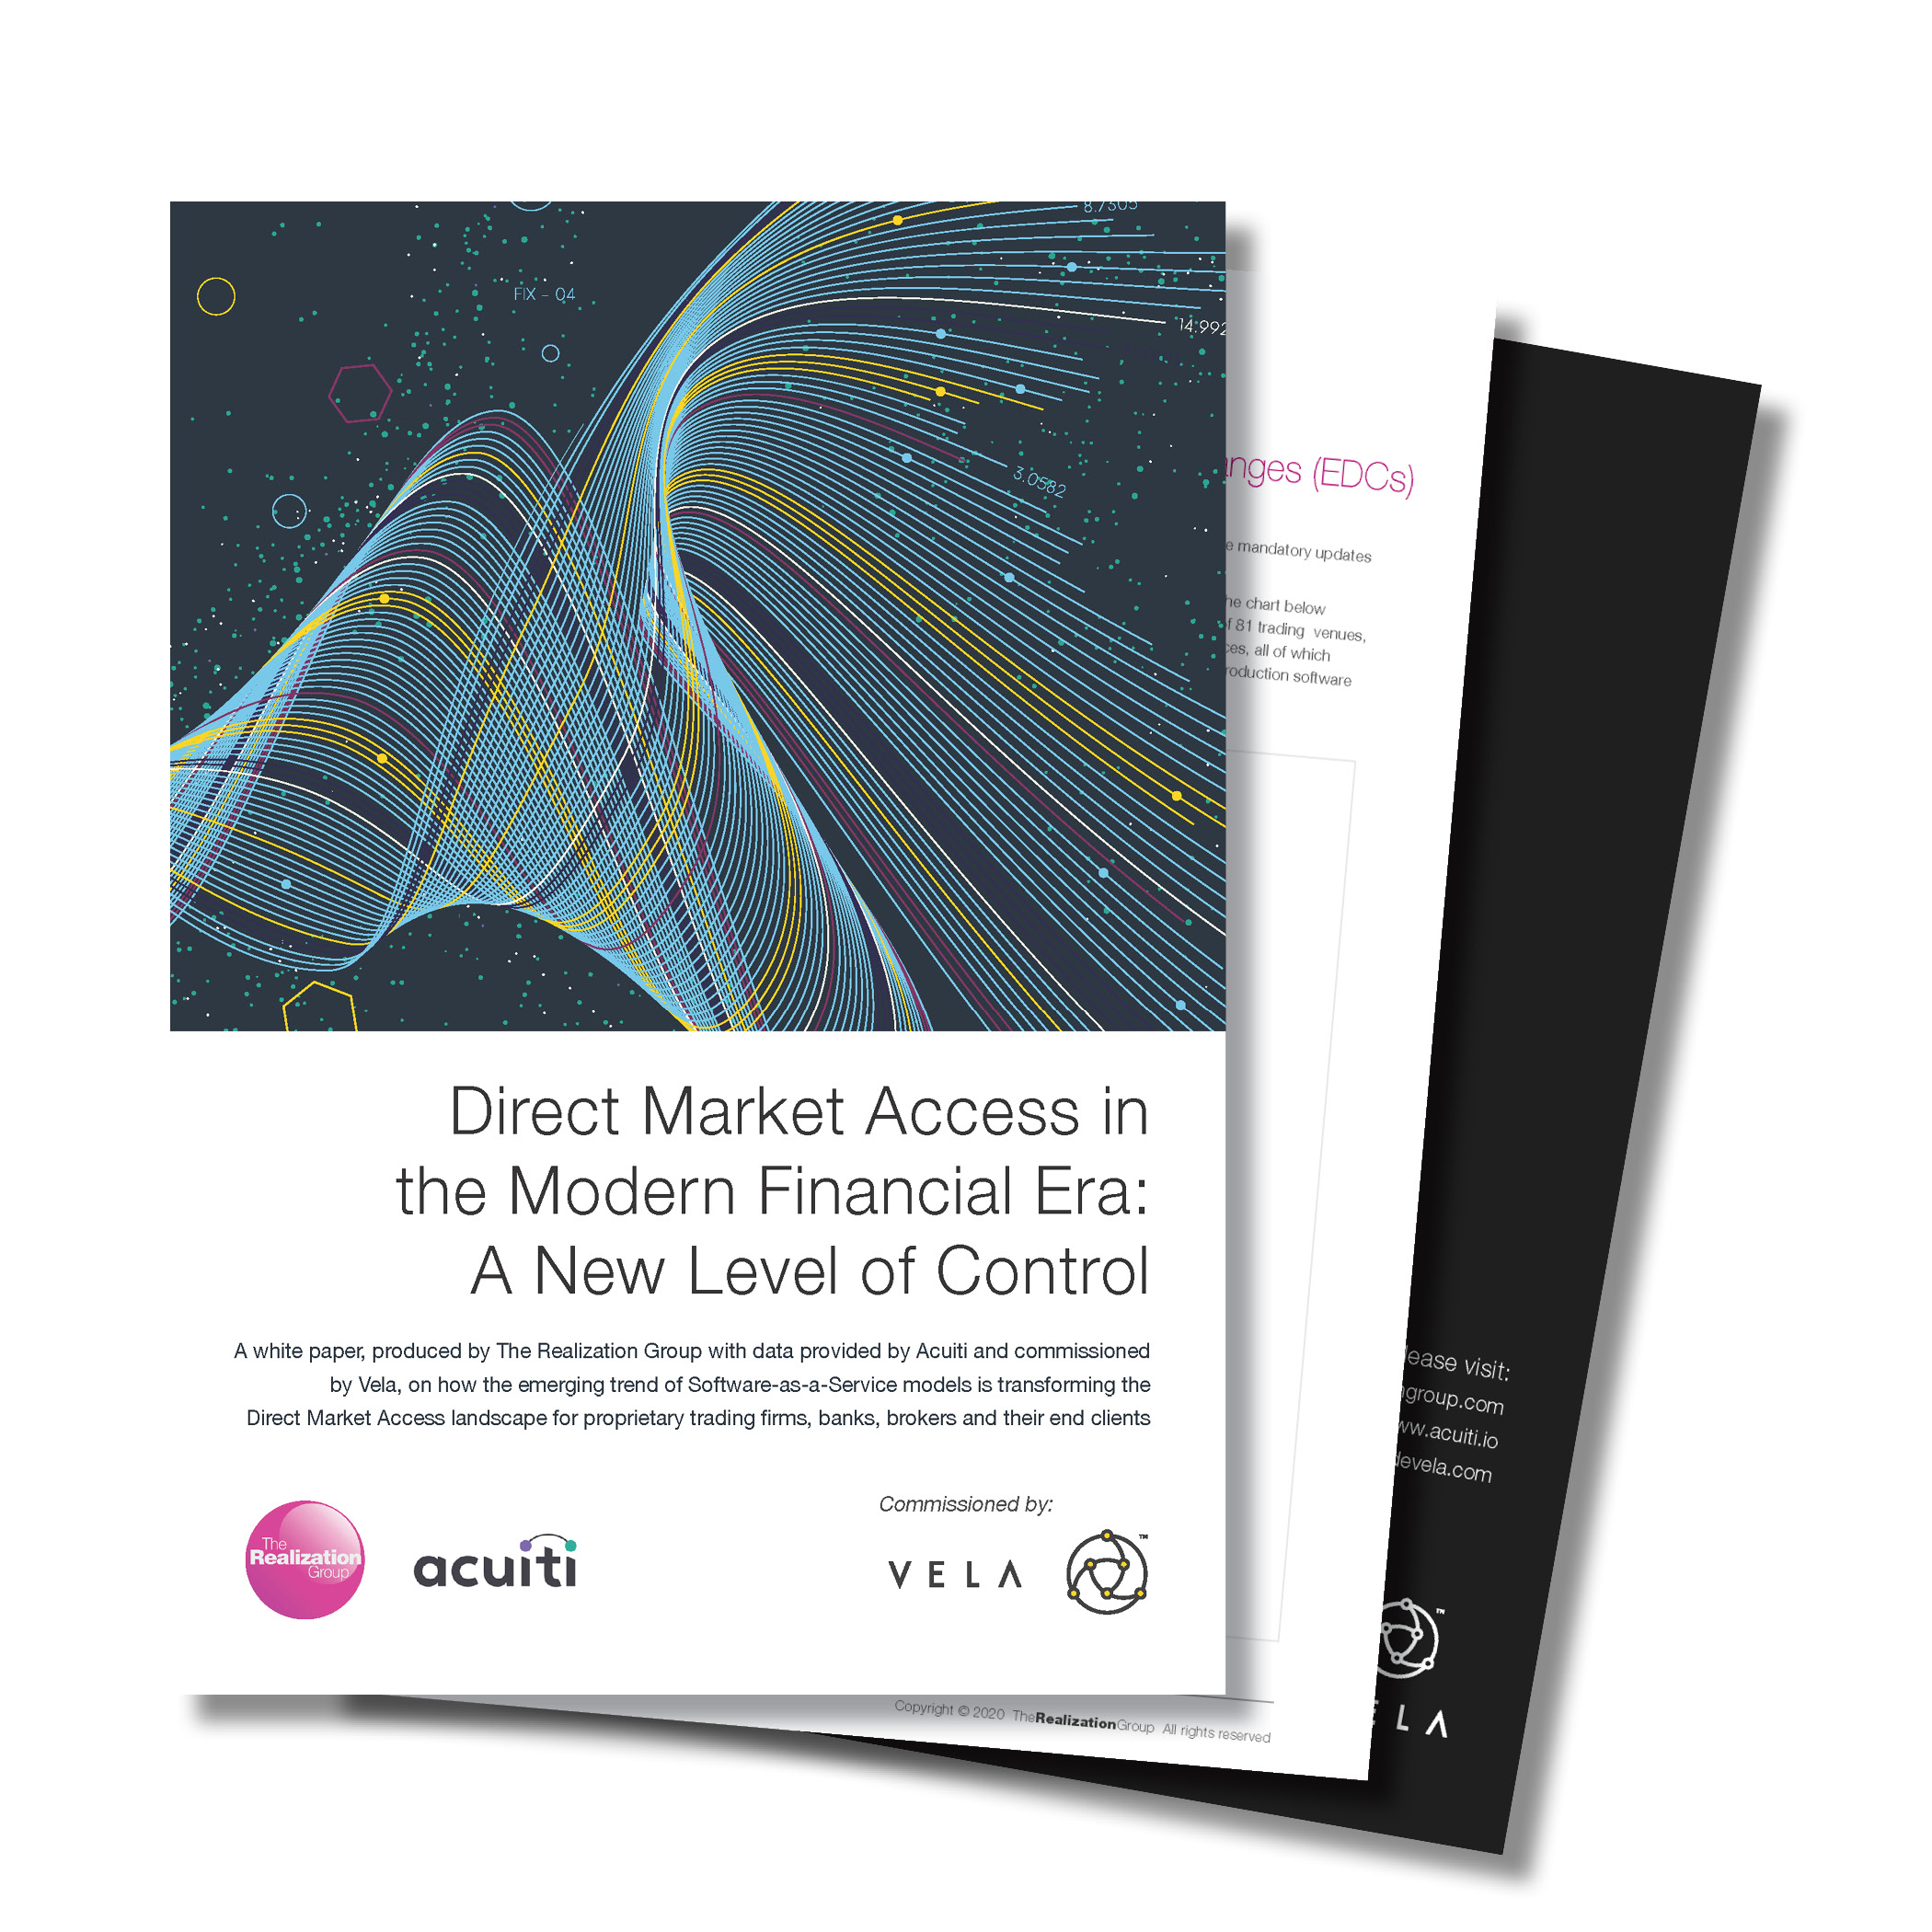 Direct Market Access in the Modern Financial Era: A New Level of Control